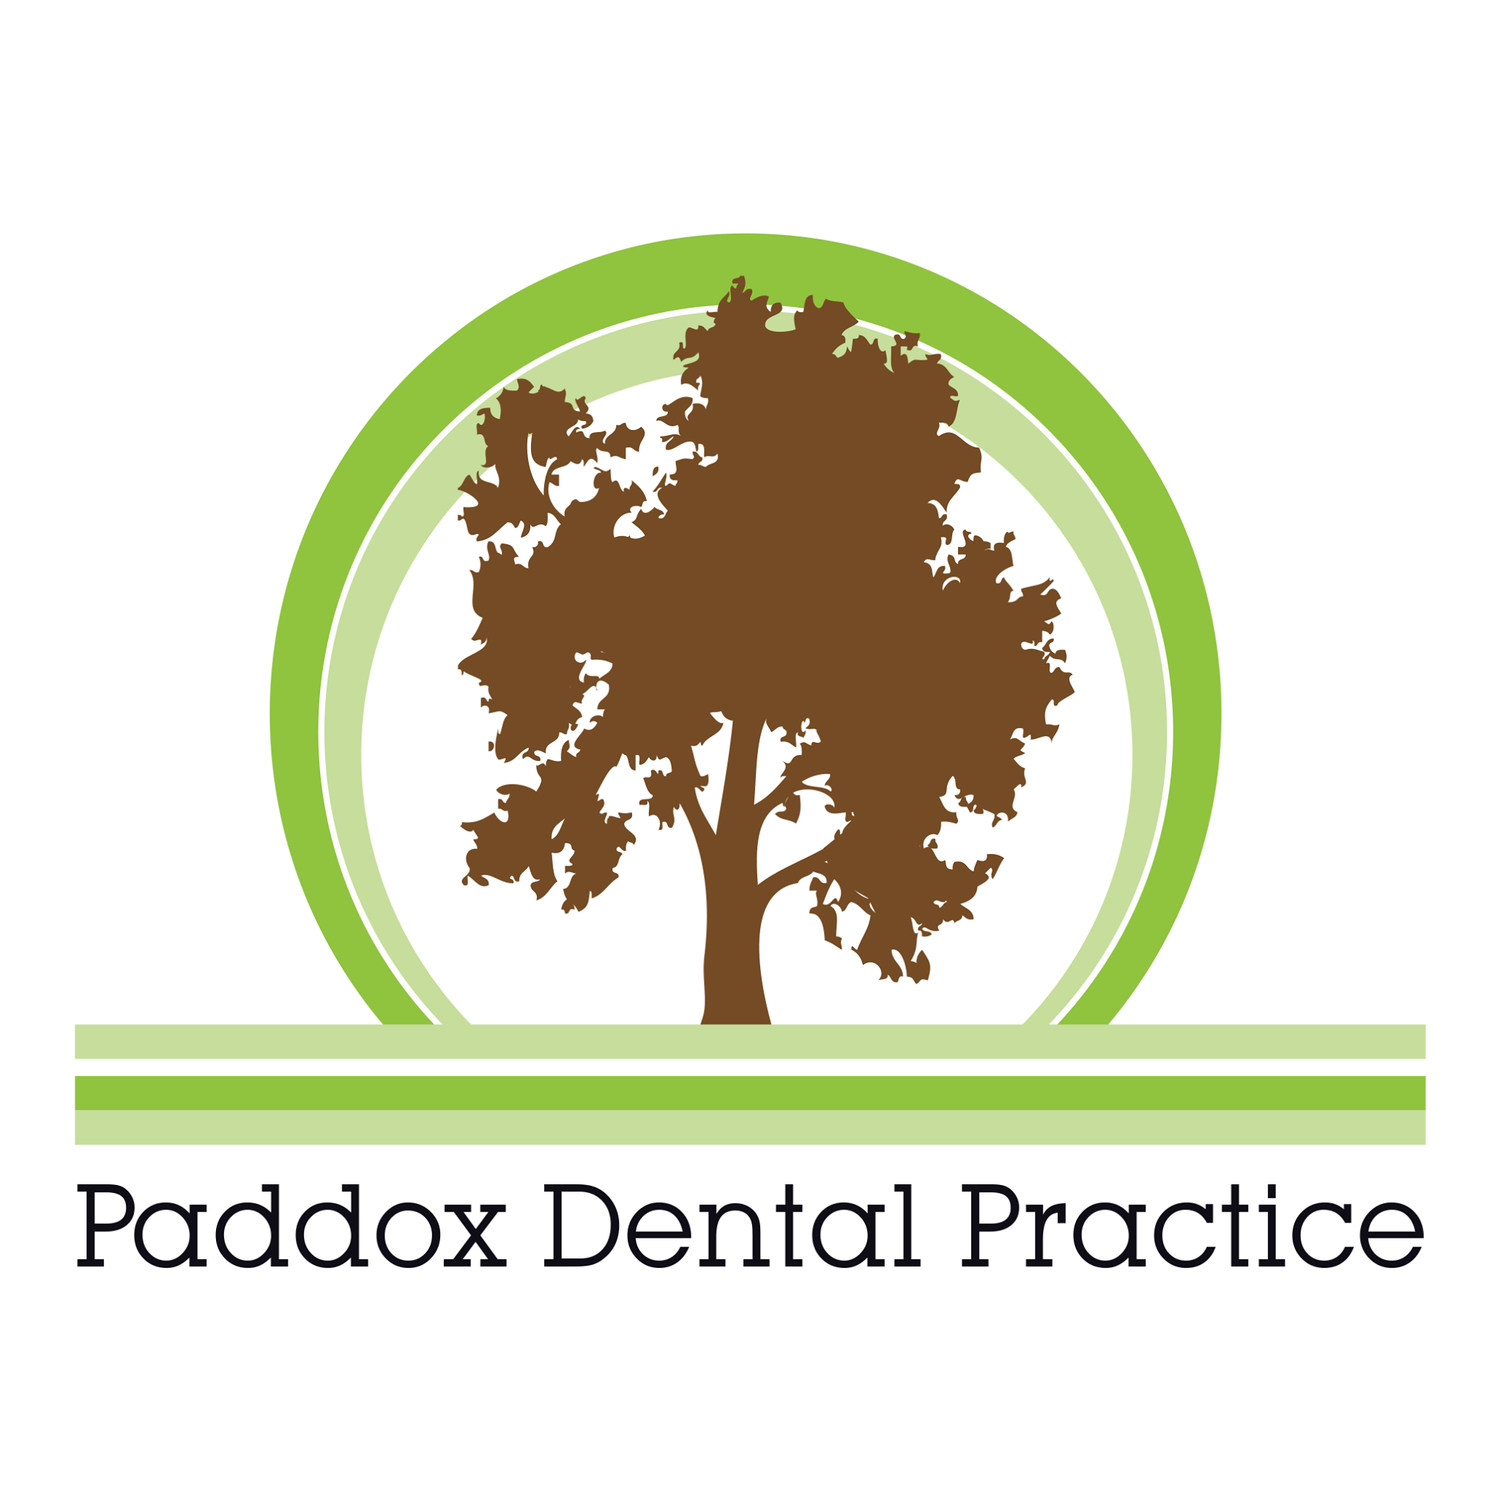 Tobacco — Paddox Dental Practice